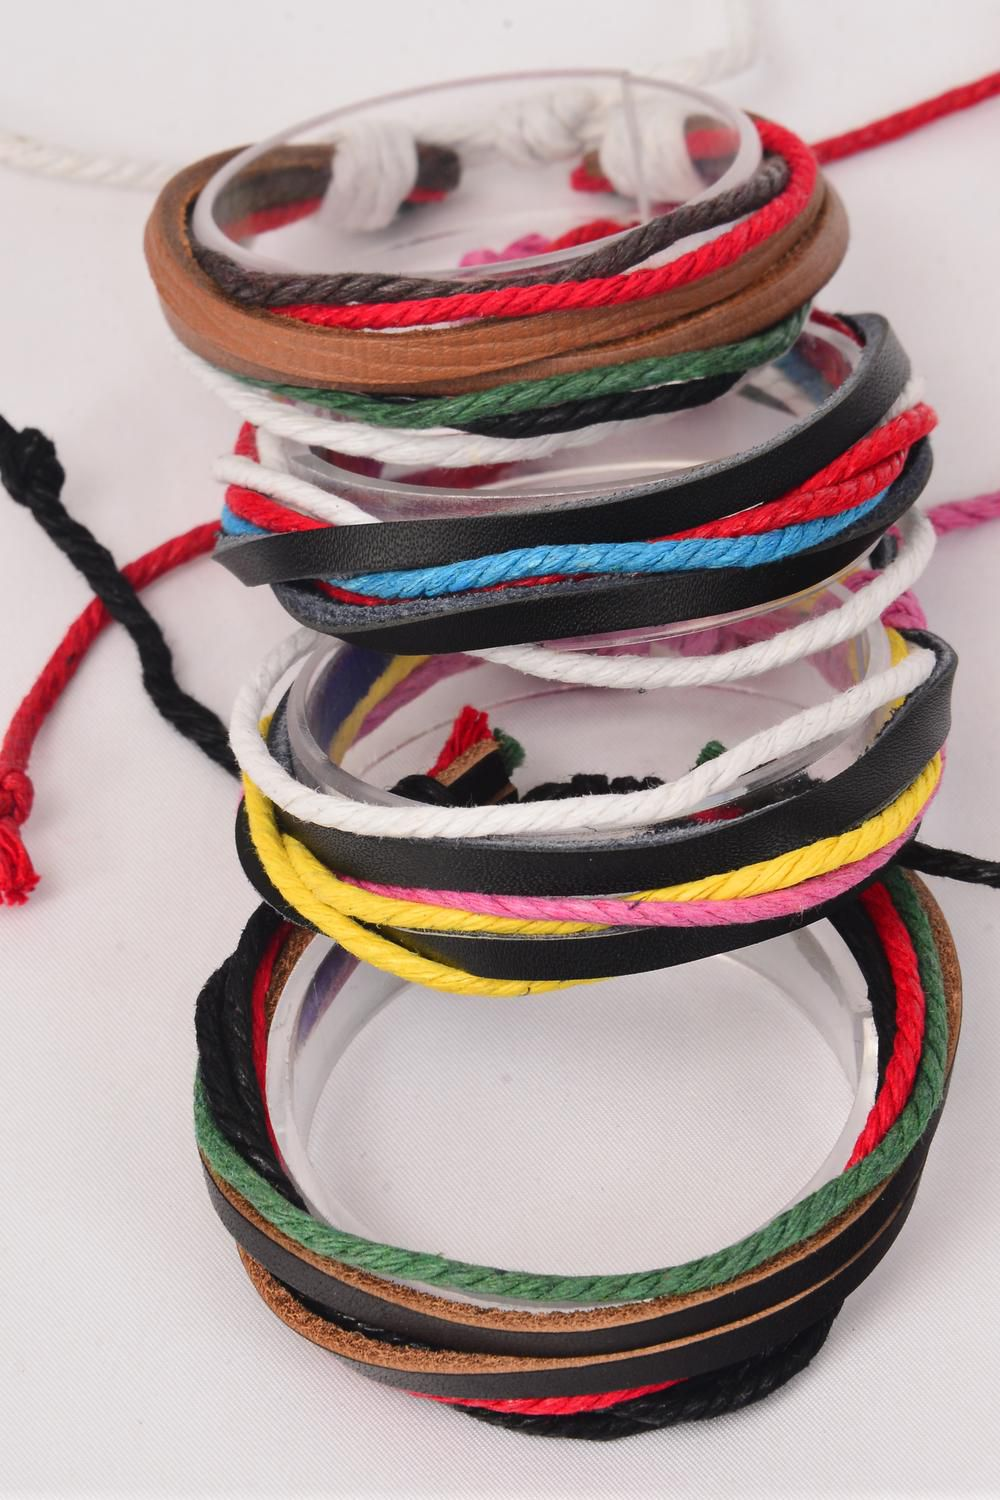 Bracelet Real Leather & Cotton Twist Mix 7 Layered Multi/DZ **Unisex** Adjustable,3 of each Color Asst,Hang Tag & OPP bag & UPC Code -